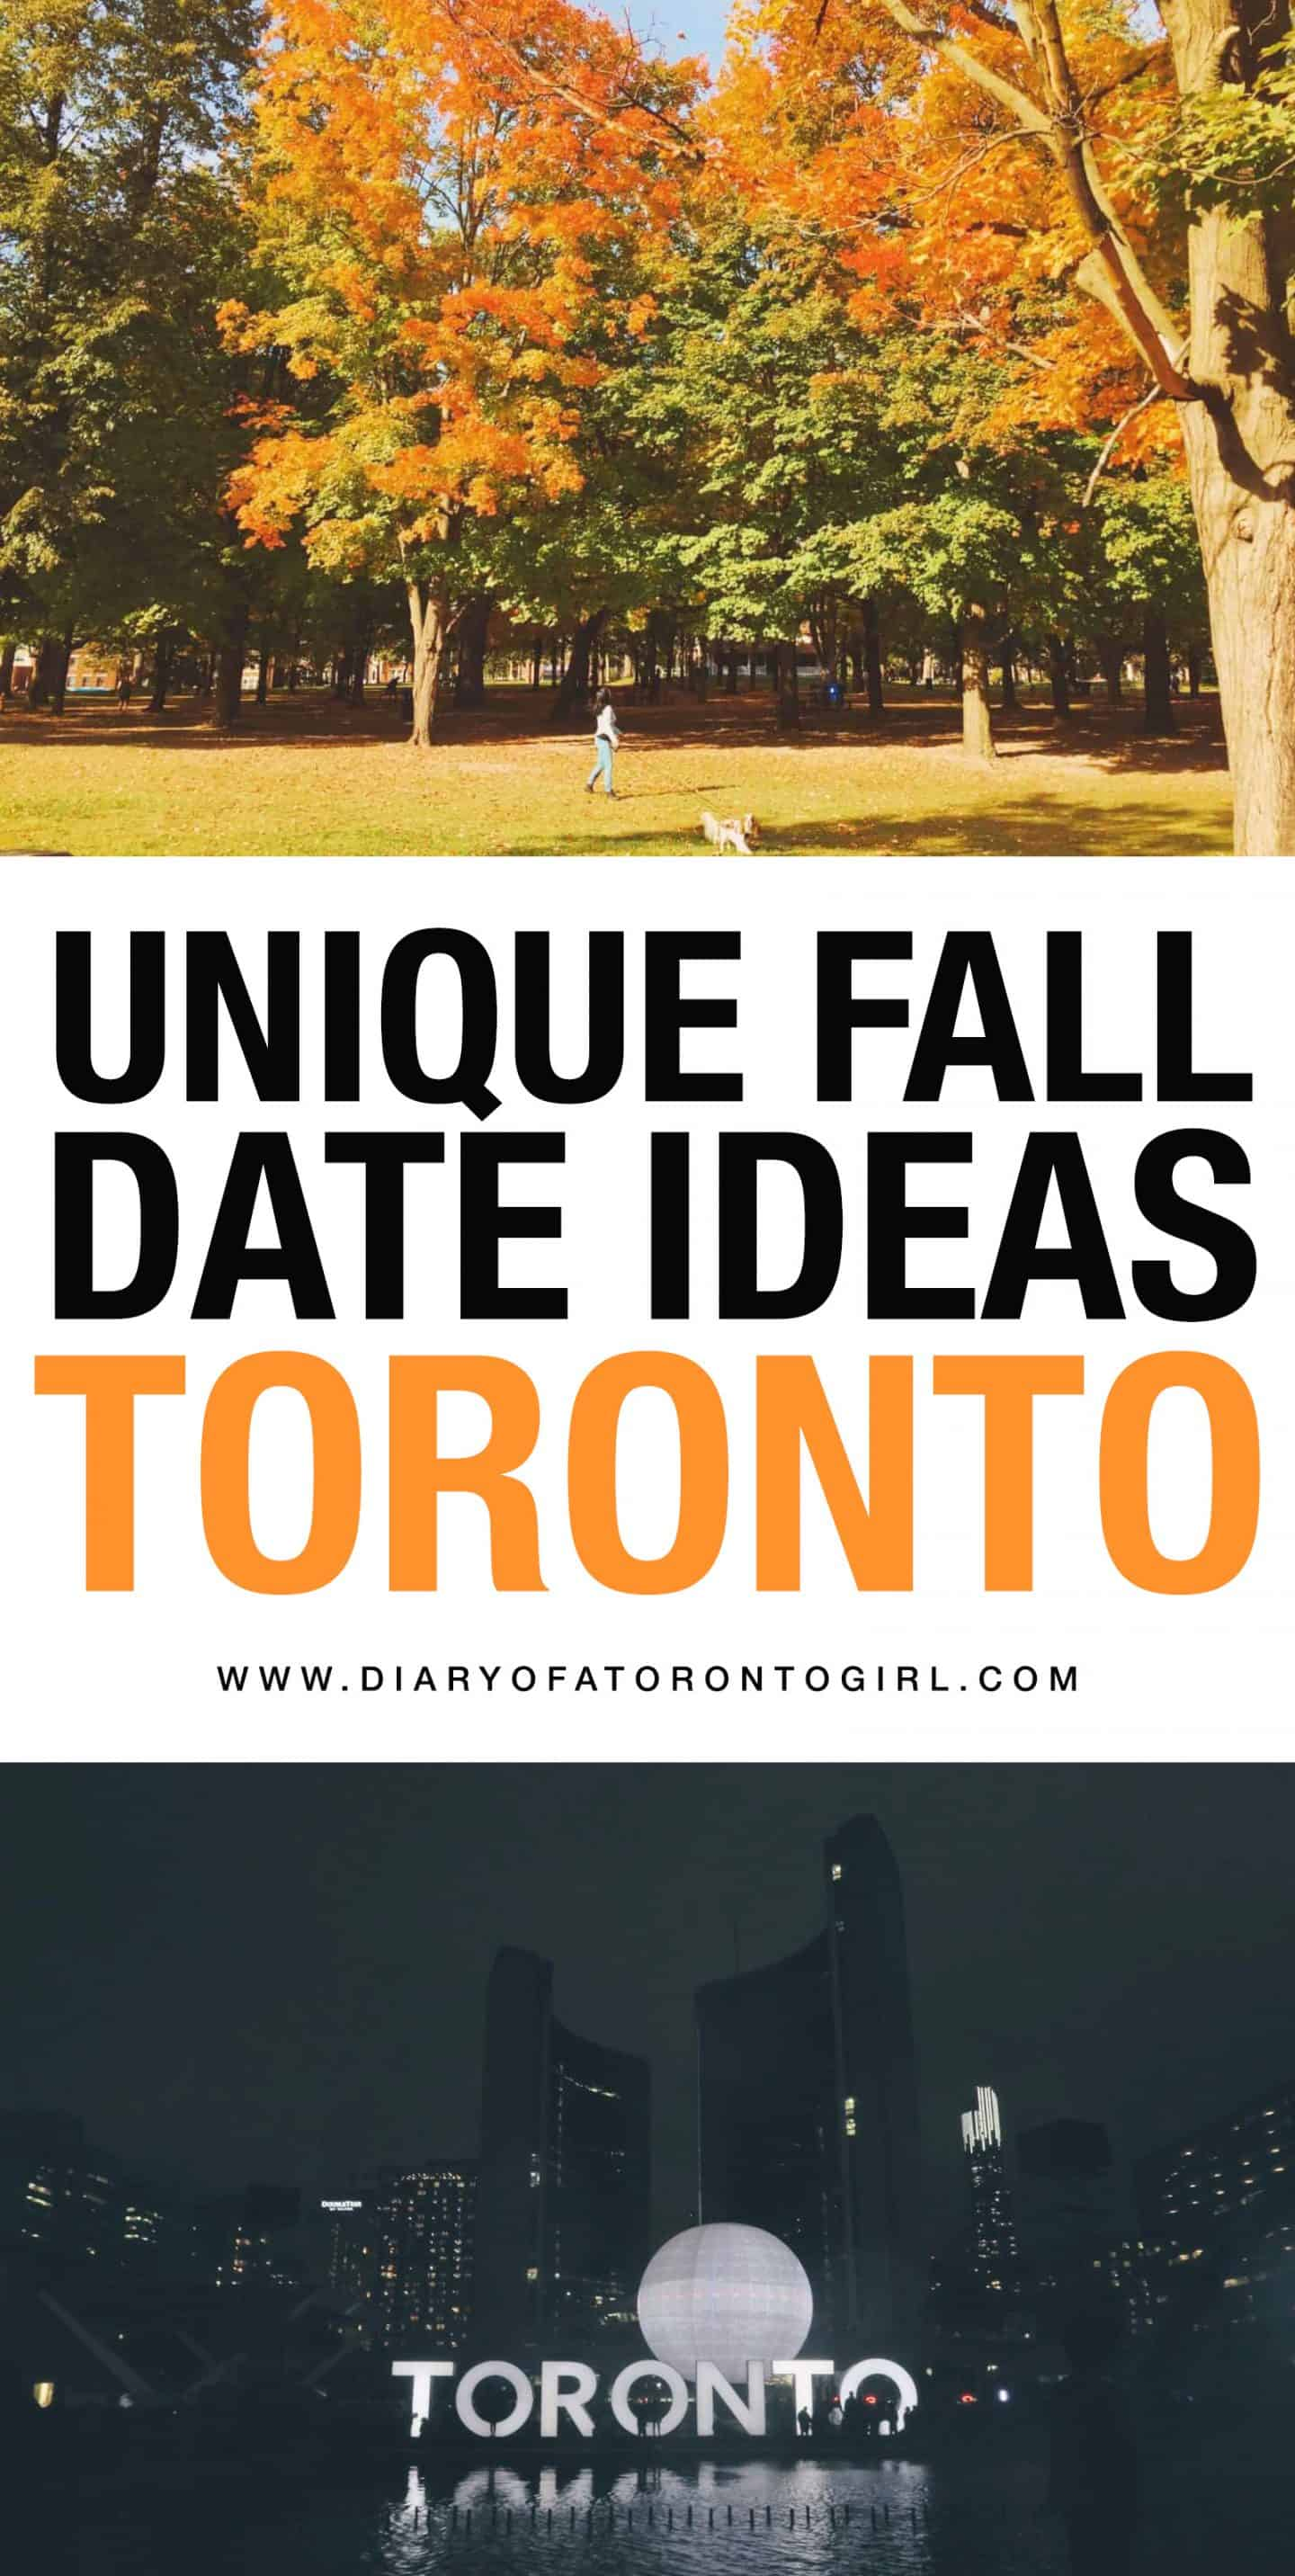 Looking for unique fall date ideas in Toronto? Here are some fun and exciting dates you can go on during the fall season!